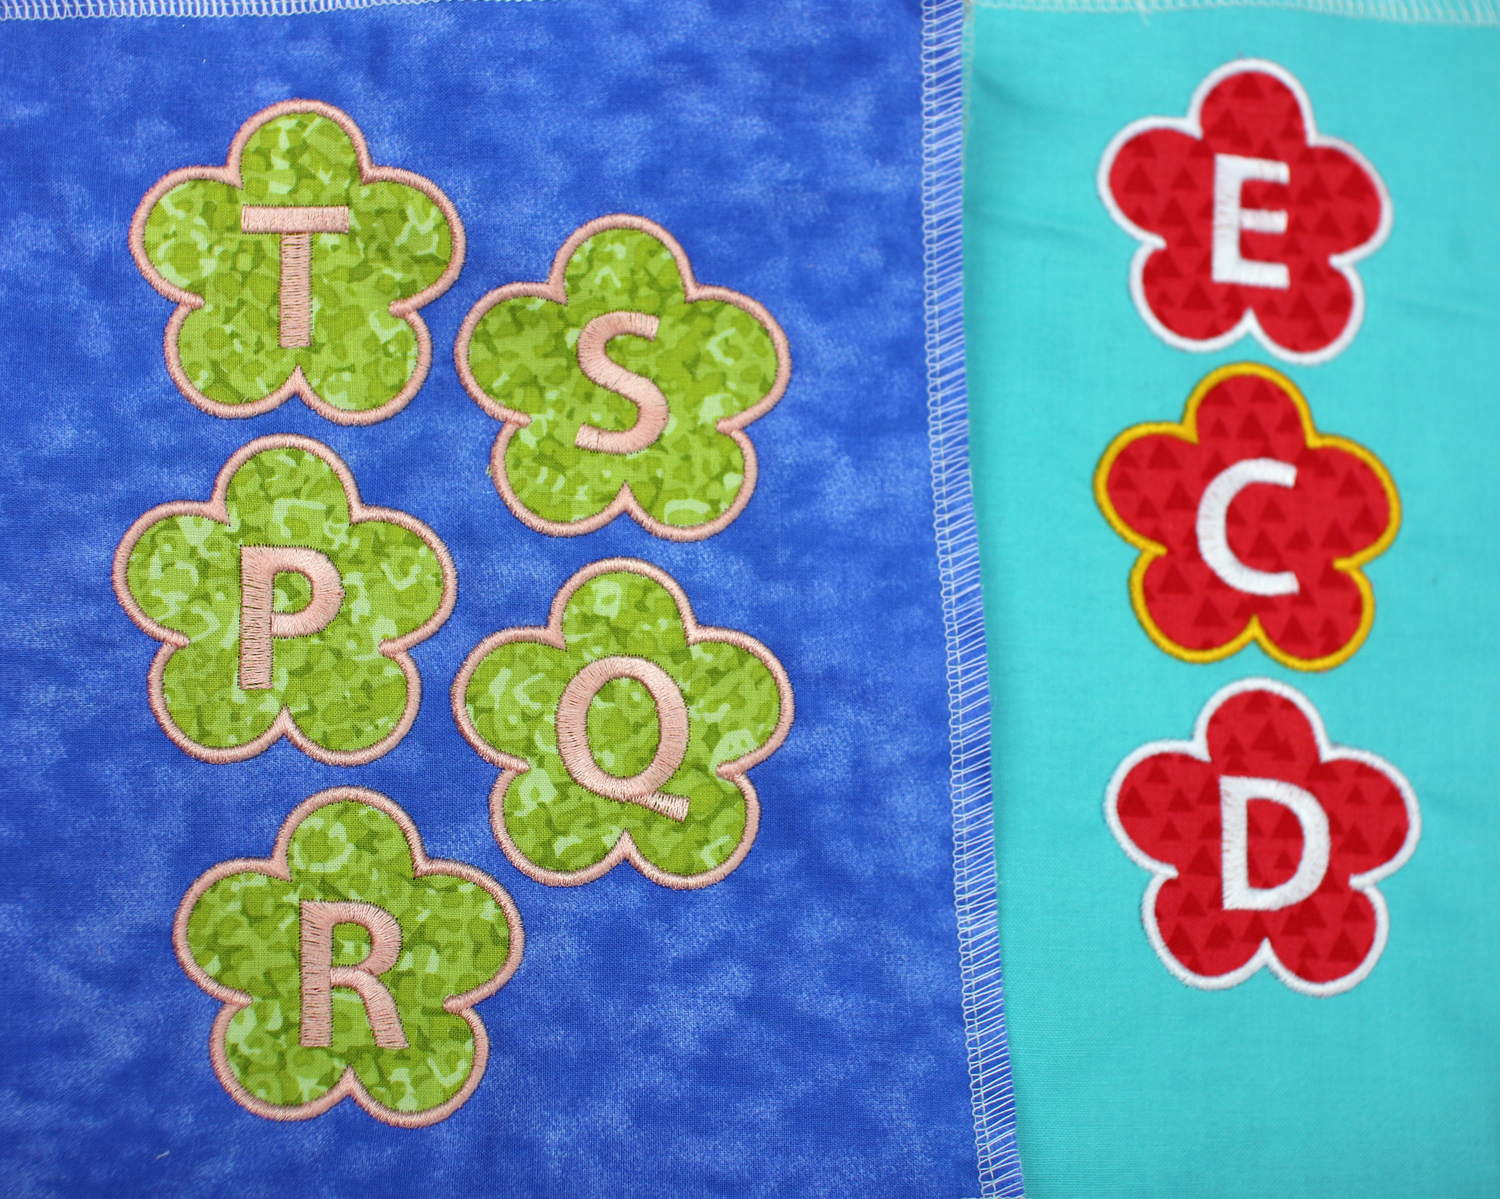 Flower applique with alphabet letters embroidery design